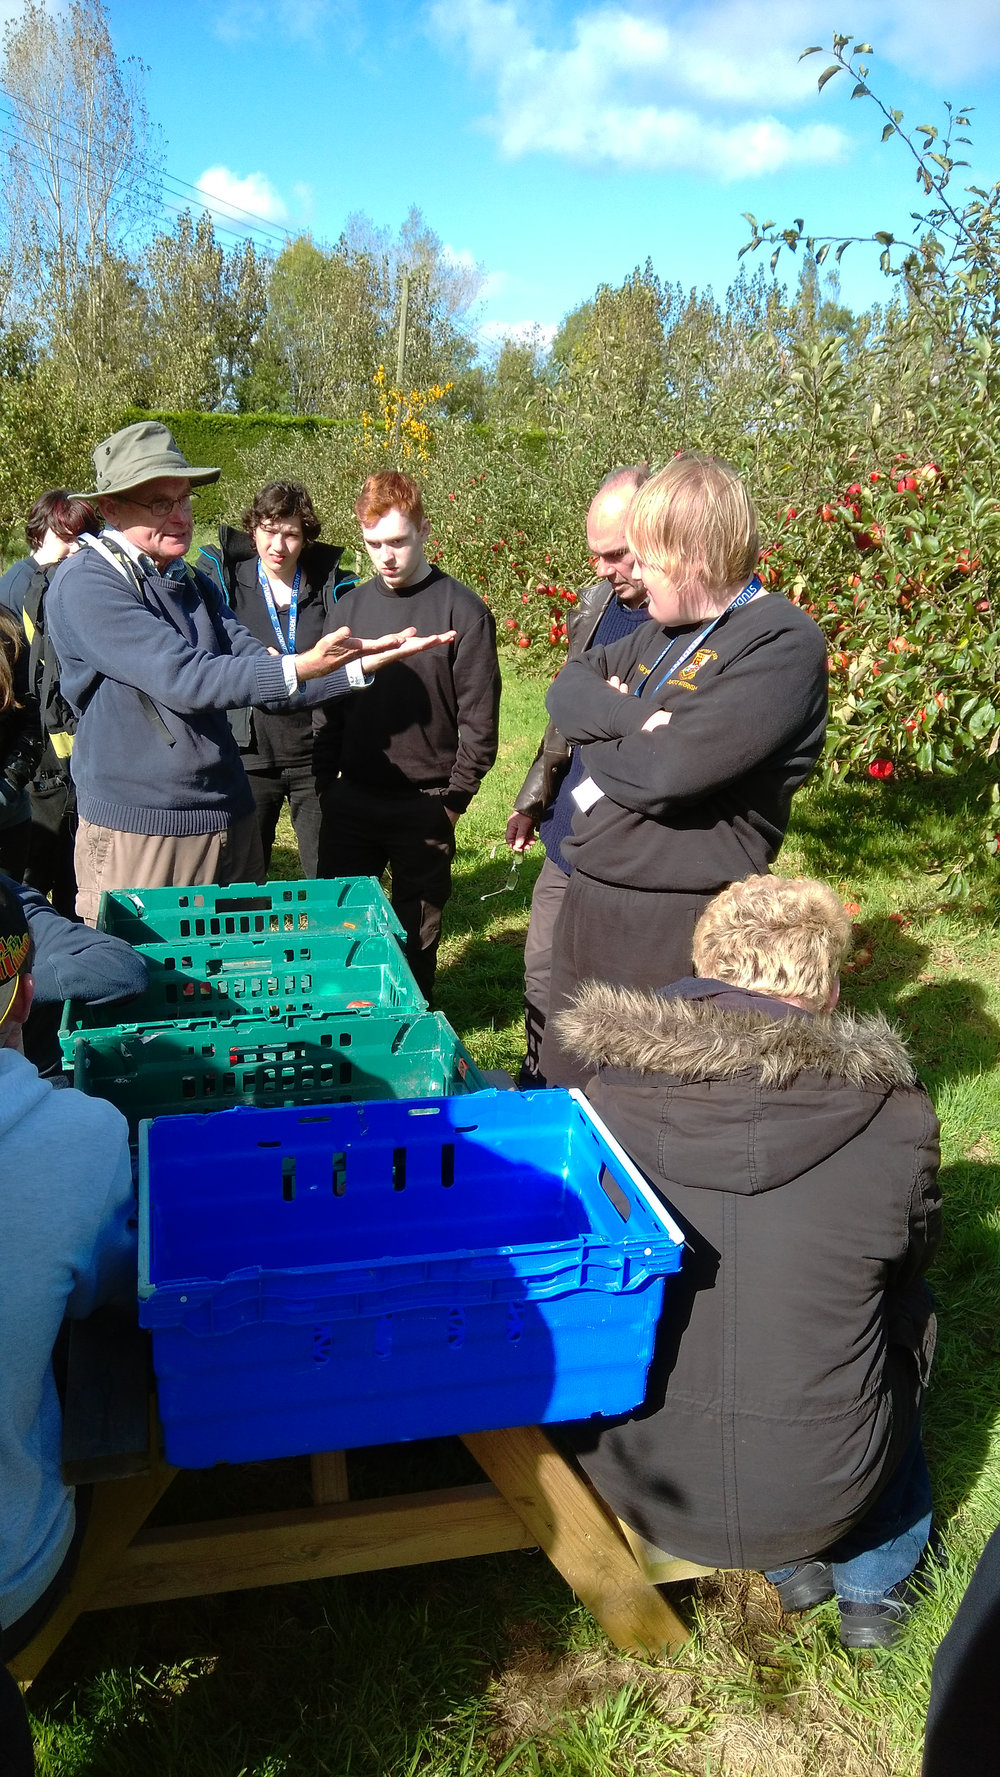 Explaining about grading apples